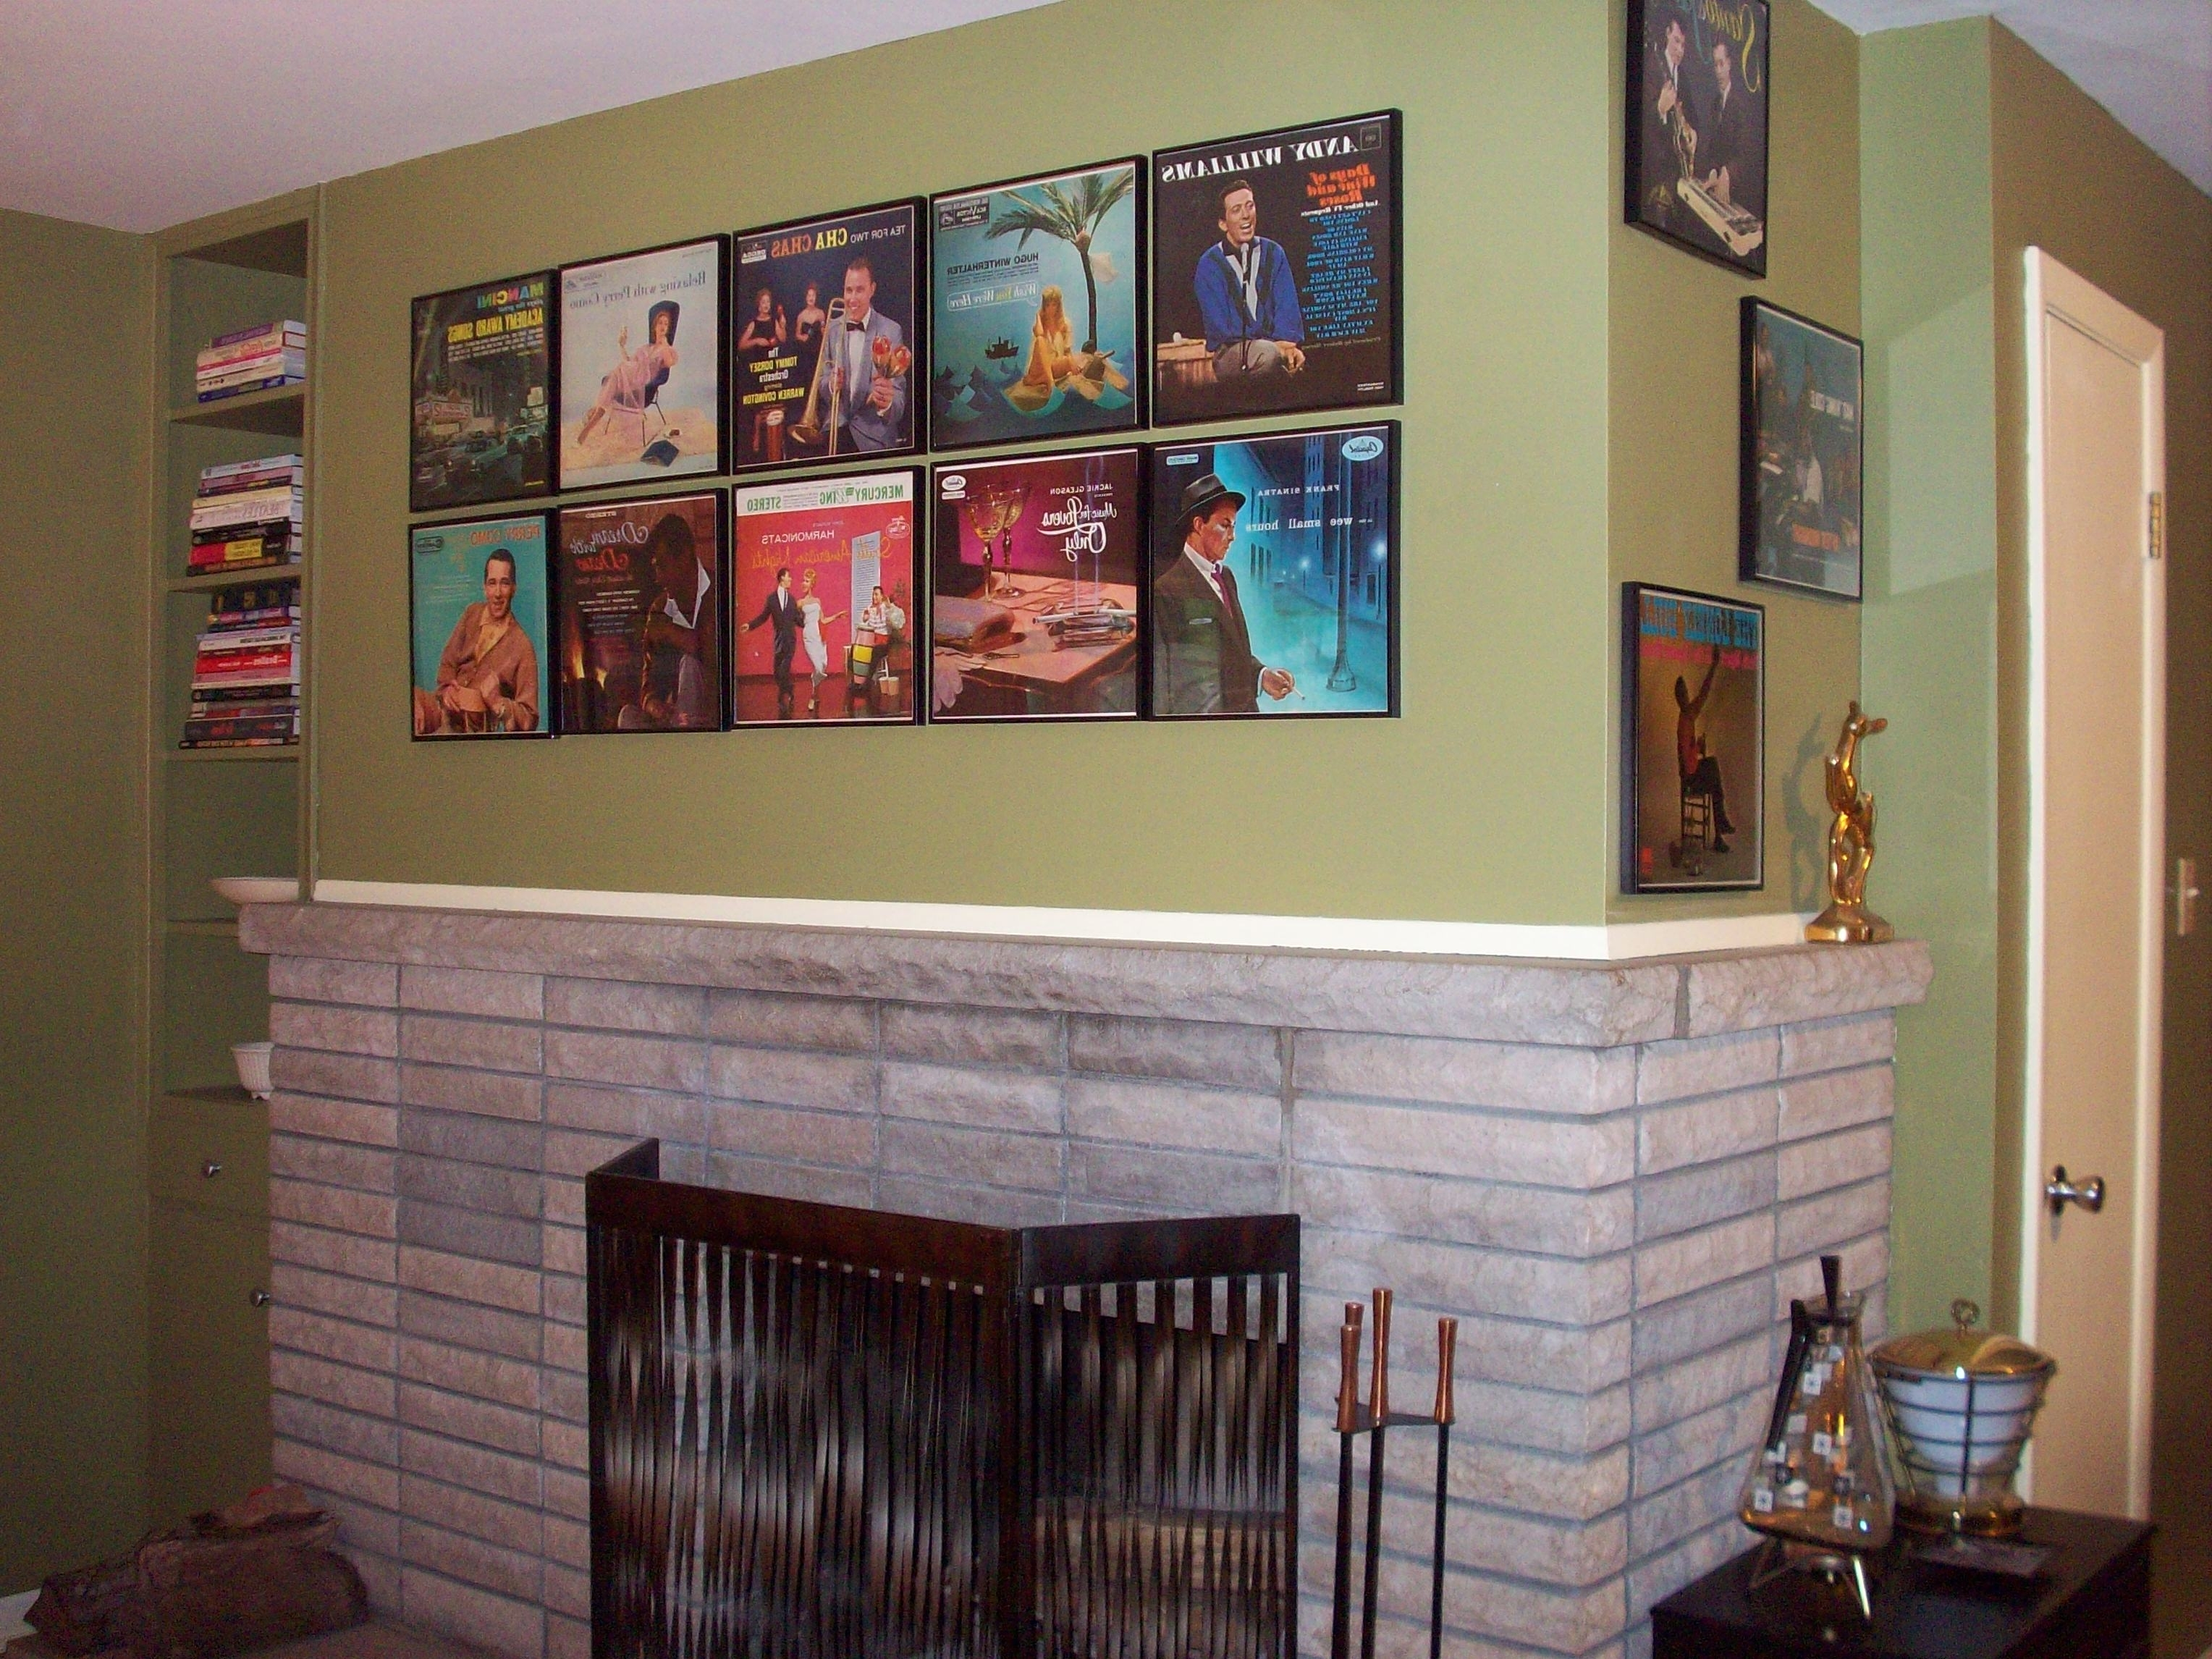 249 Photos Of The Vintage Art And Wall Decor In Readers' Homes Regarding Favorite Album Cover Wall Art (View 1 of 15)